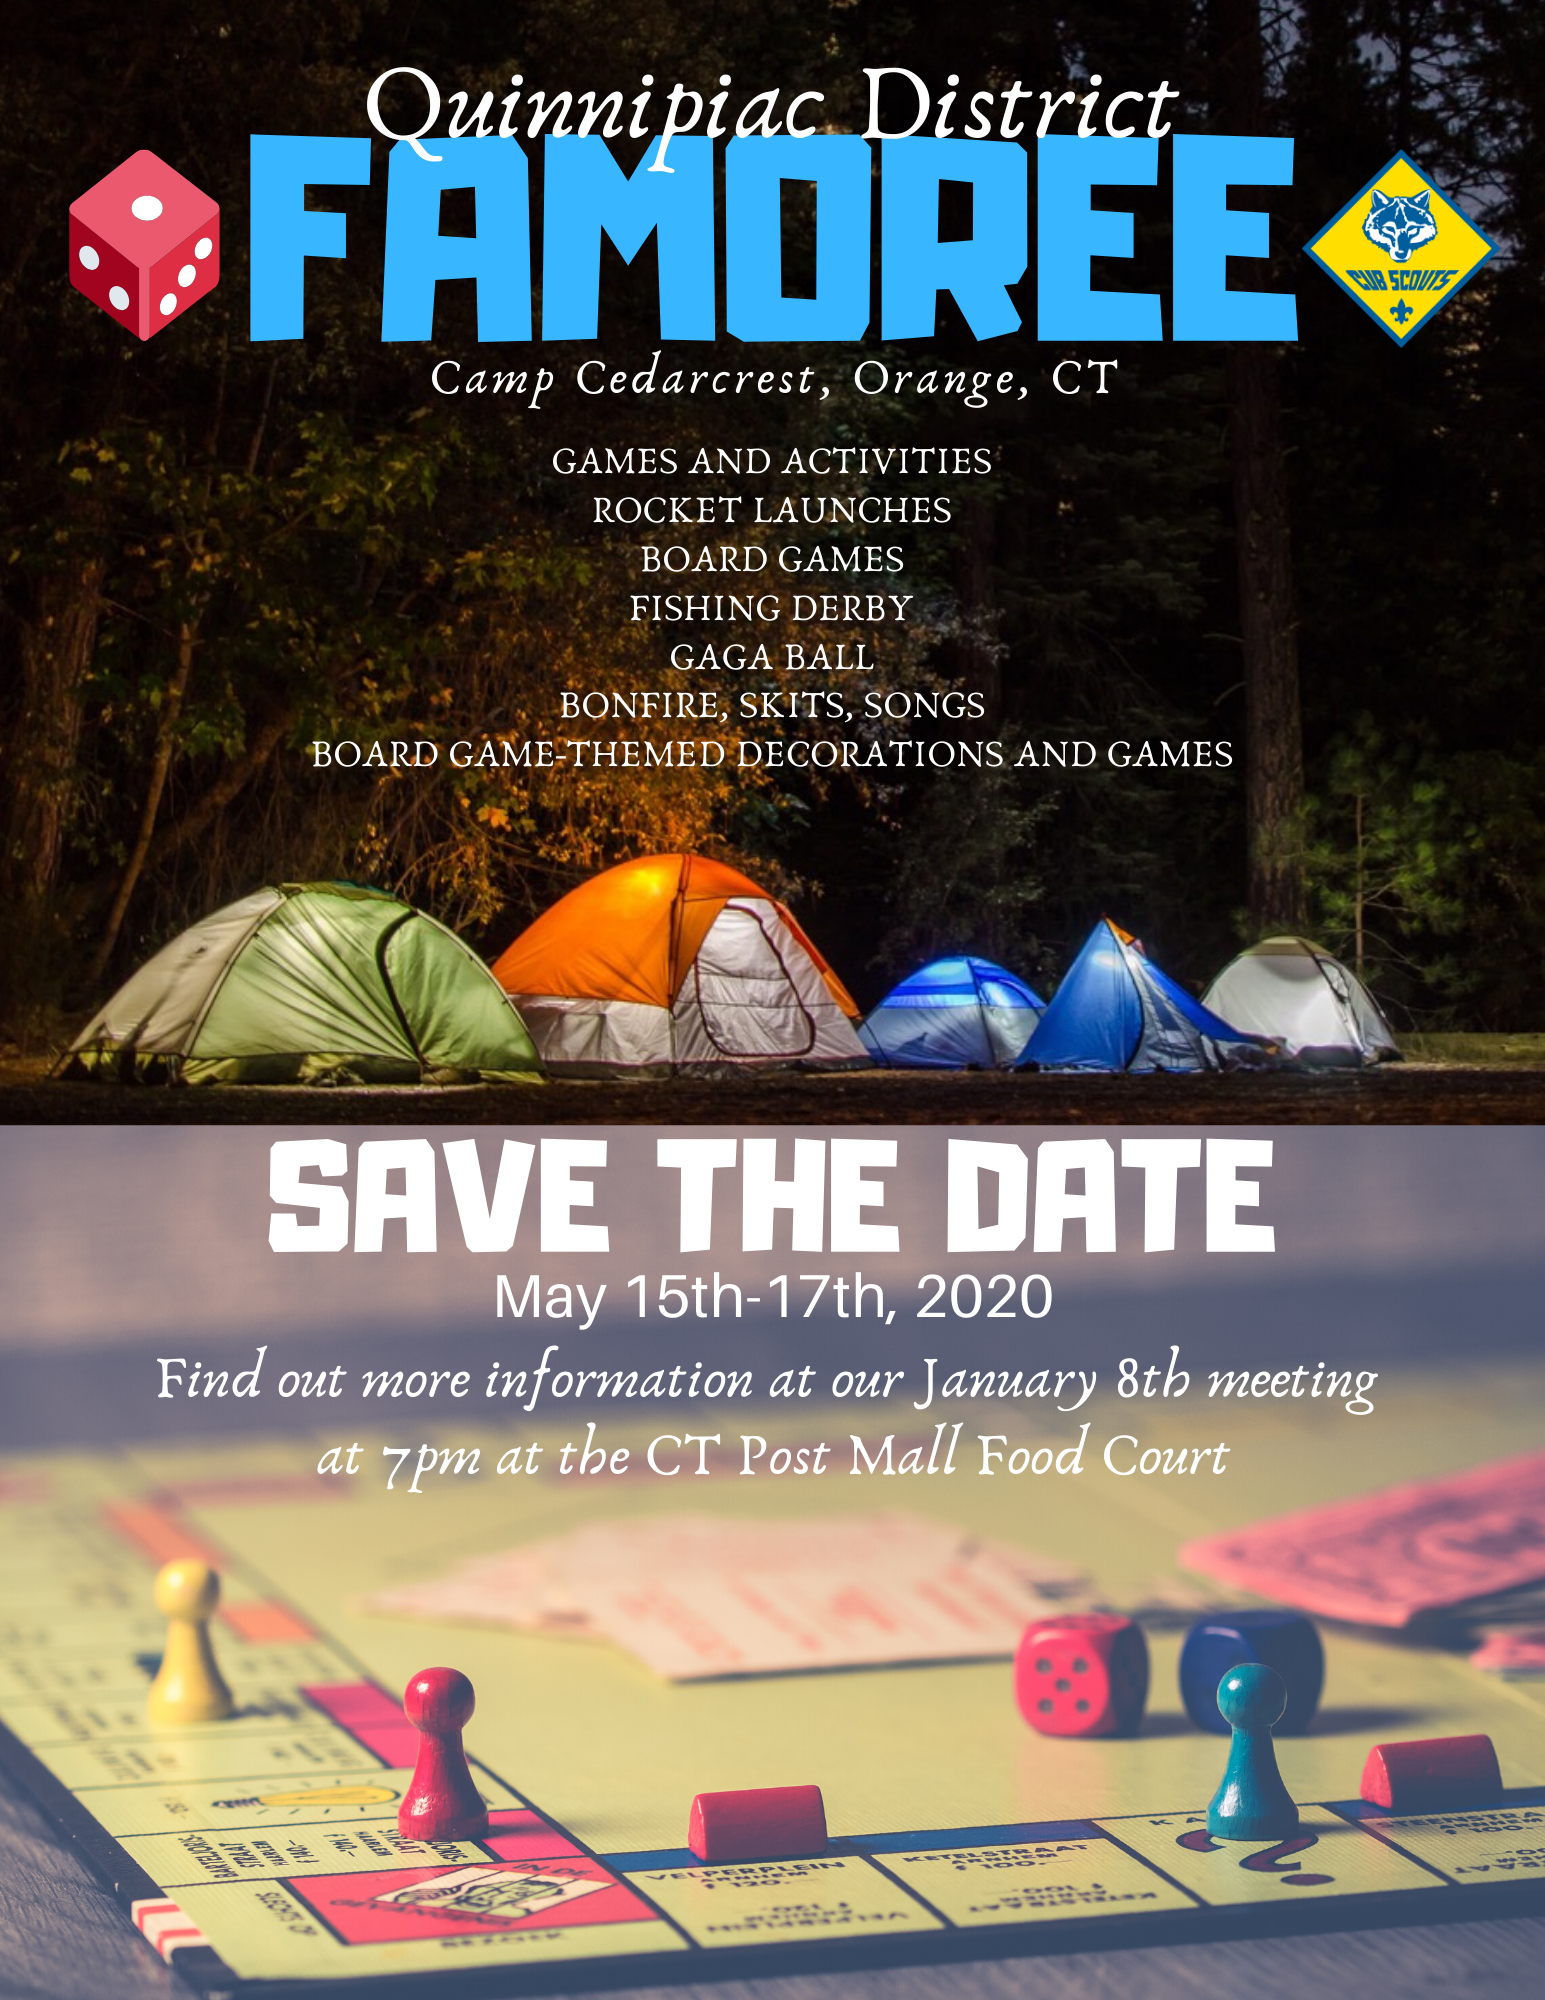 2020 Famoree Save The Date!